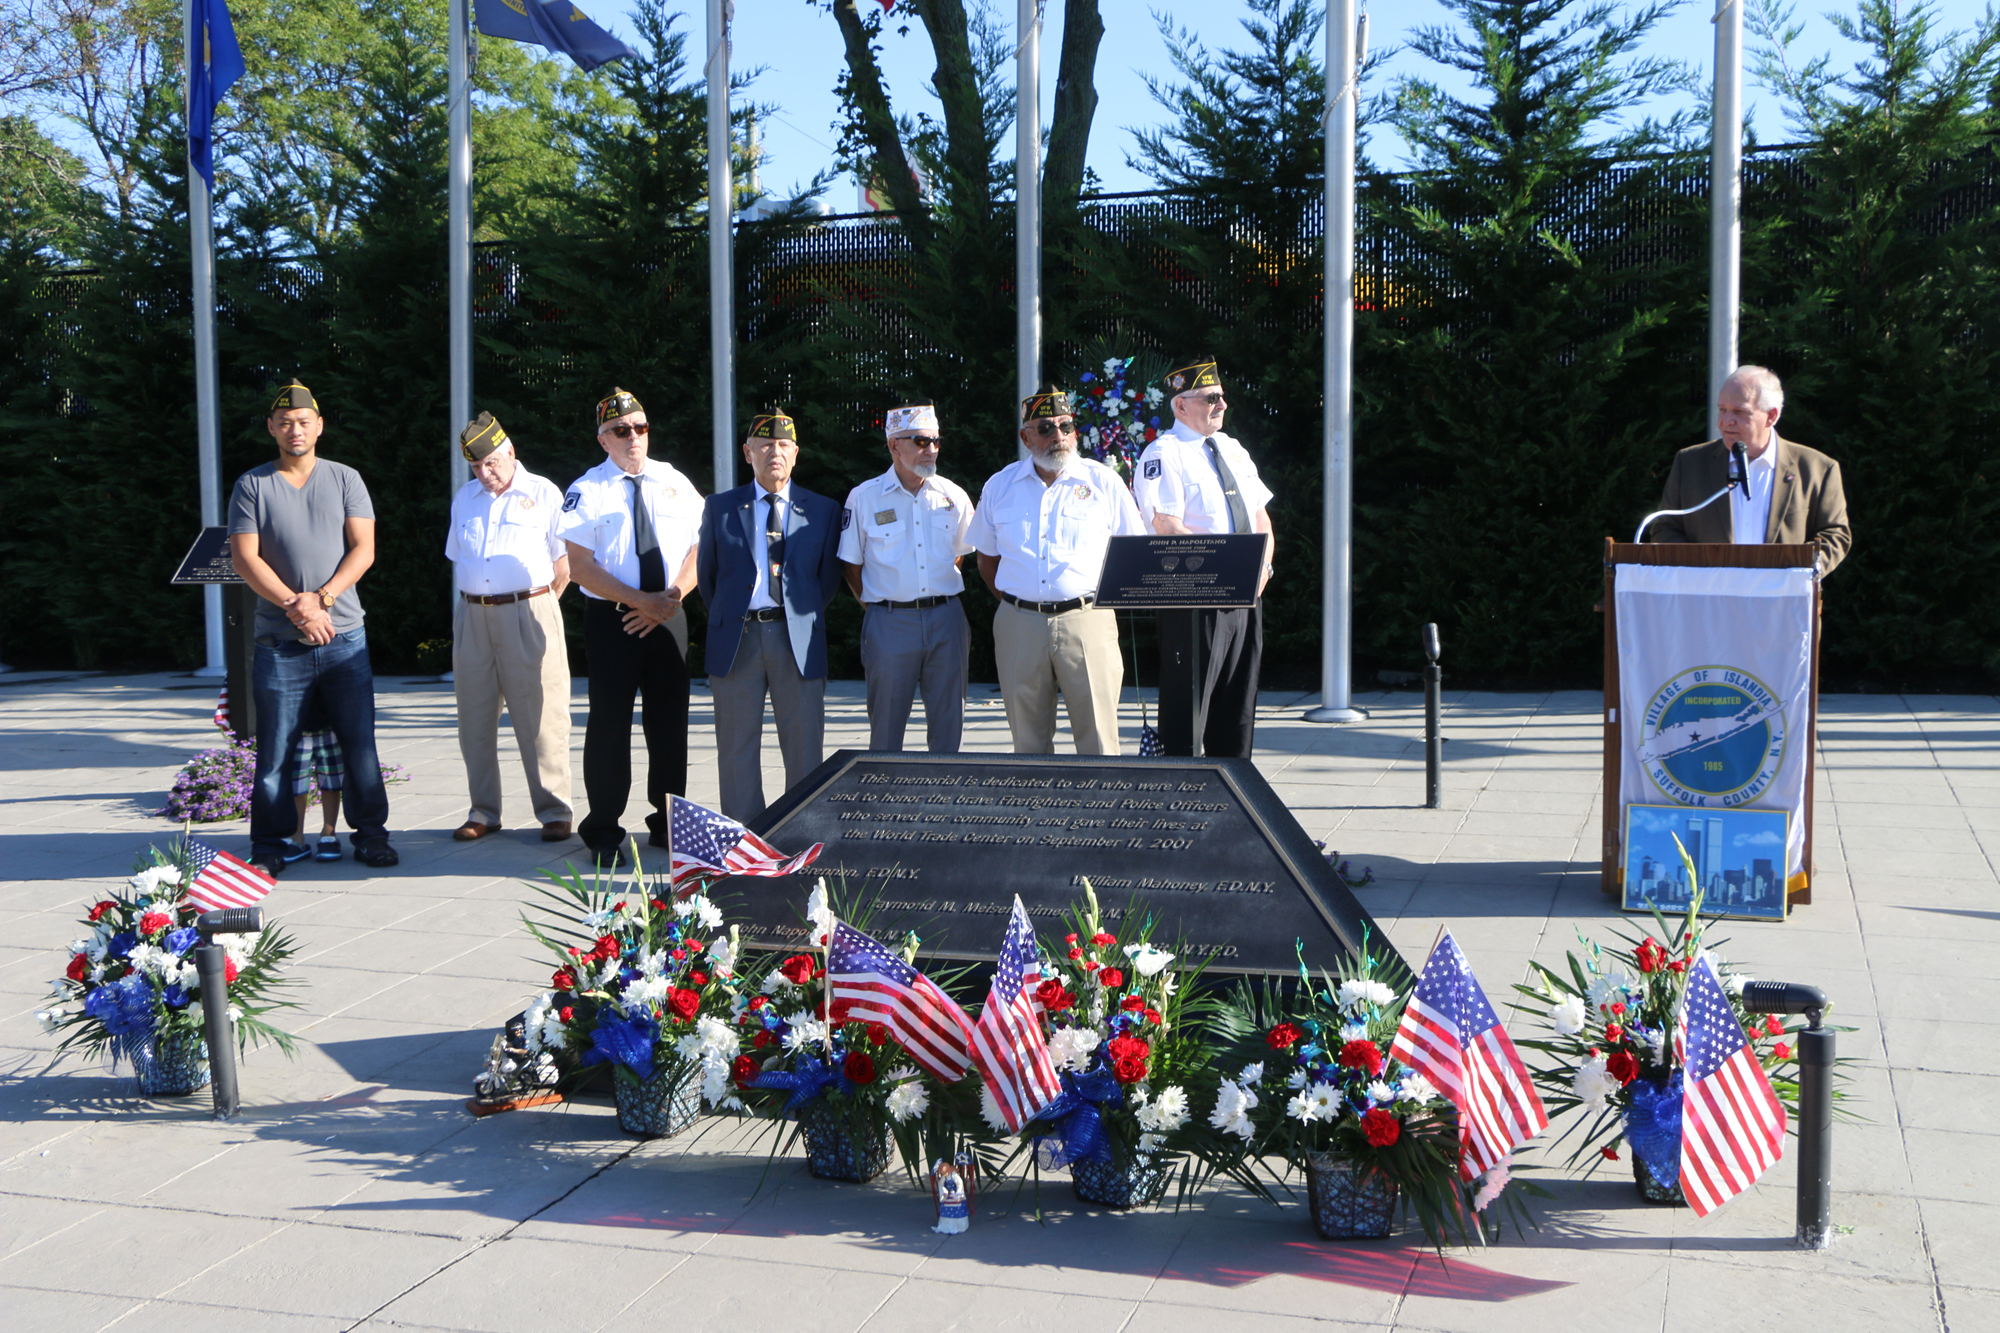 Mayor Dorman (standing behind podium) addresses those in attendance at the September 11th Memorial Ceremony at the First Responders Memorial on September 10.